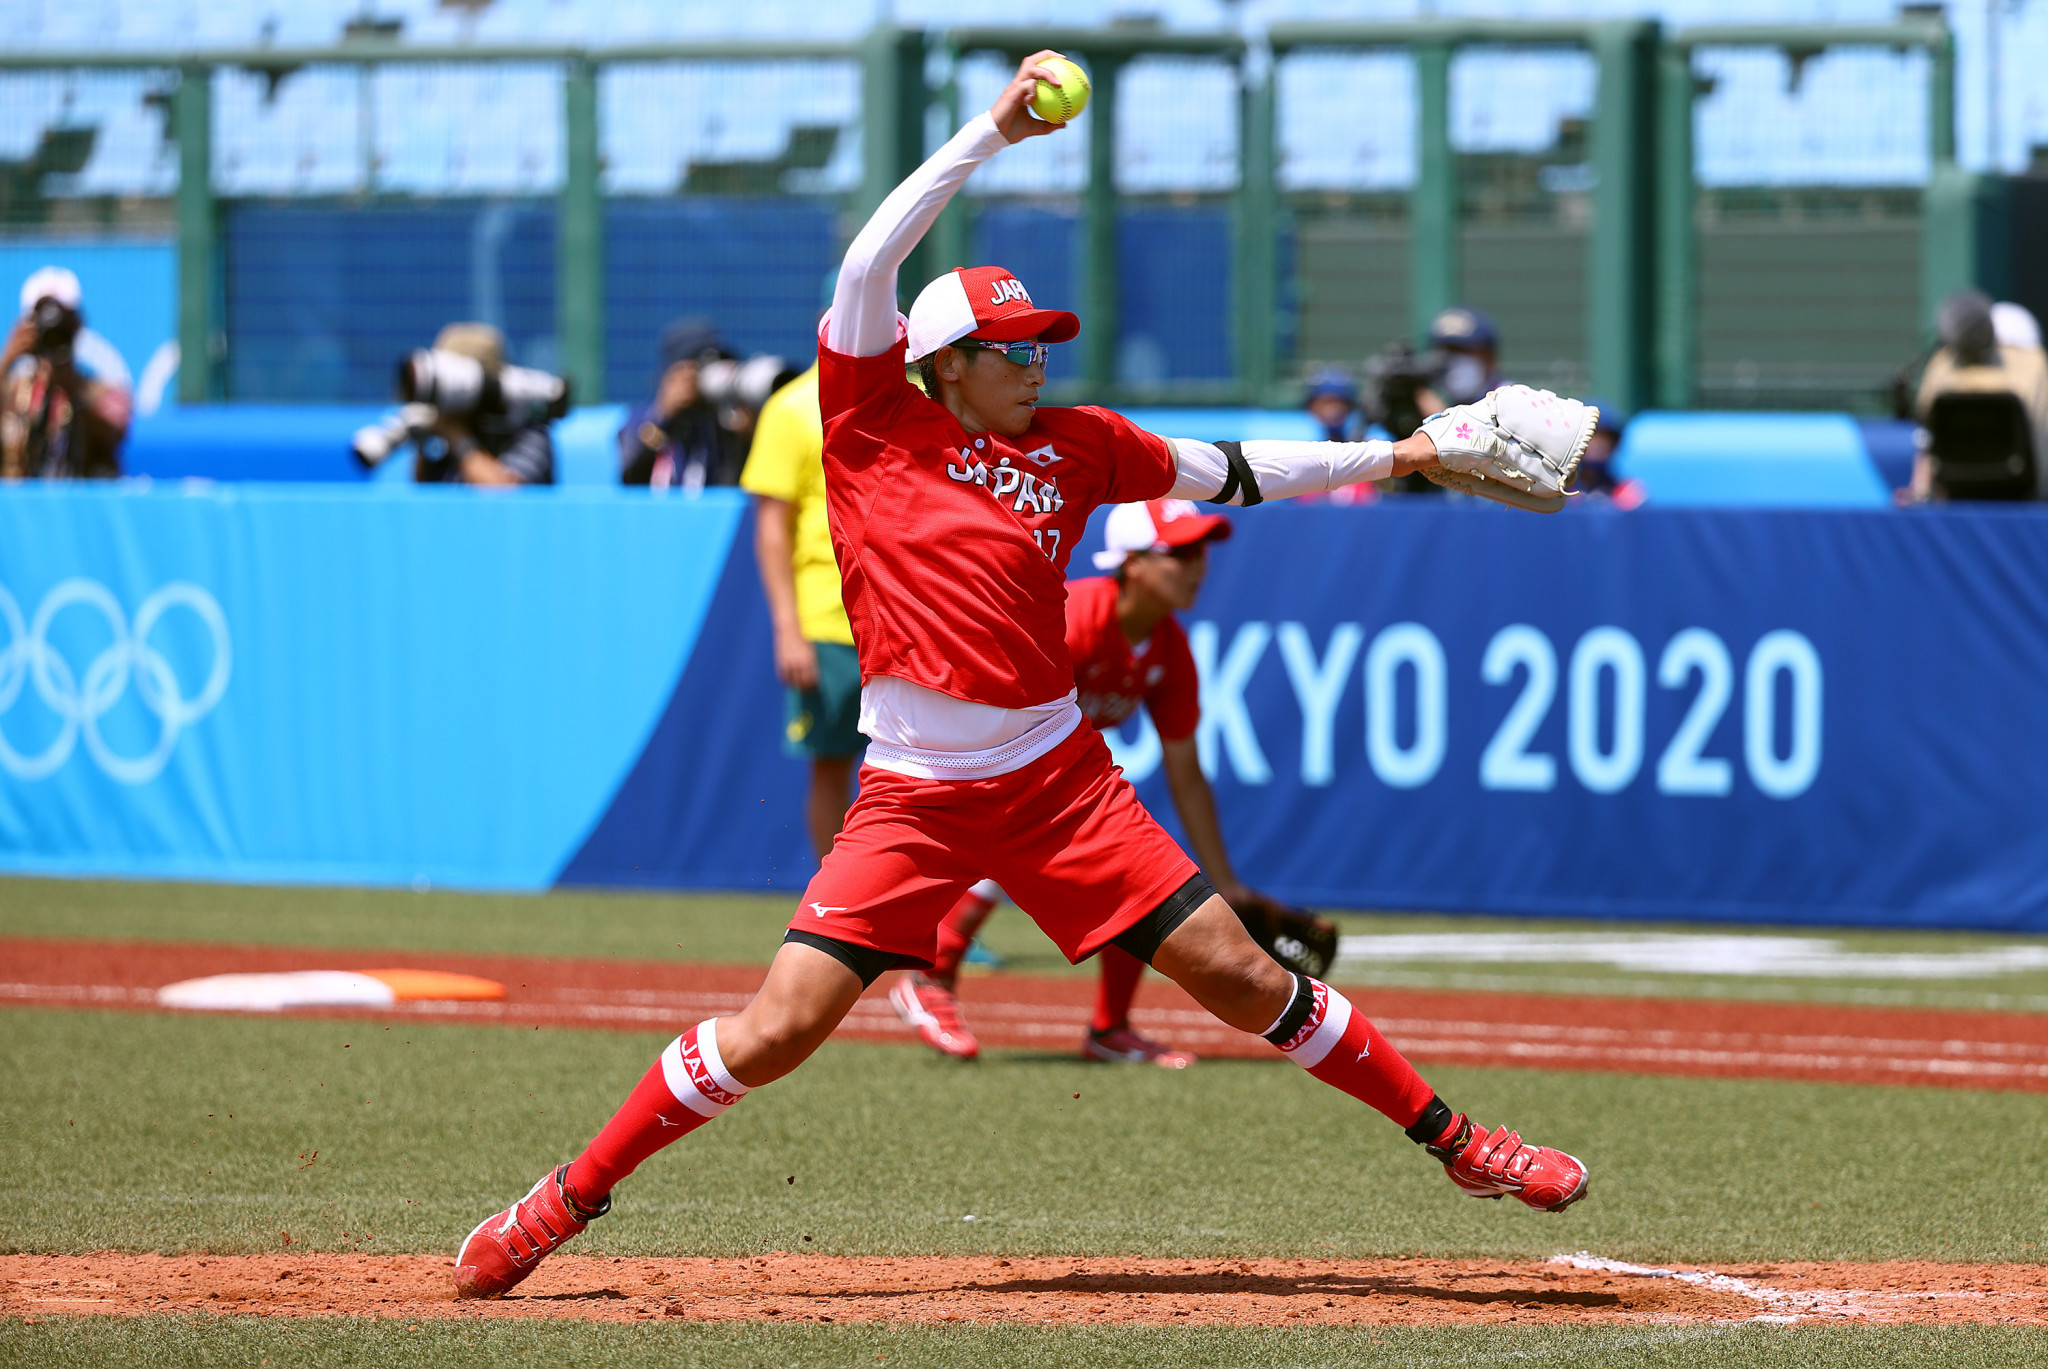 Japan won the first sporting clash of Tokyo 2020, a softball contest against Australia in Fukushima ©Getty Images